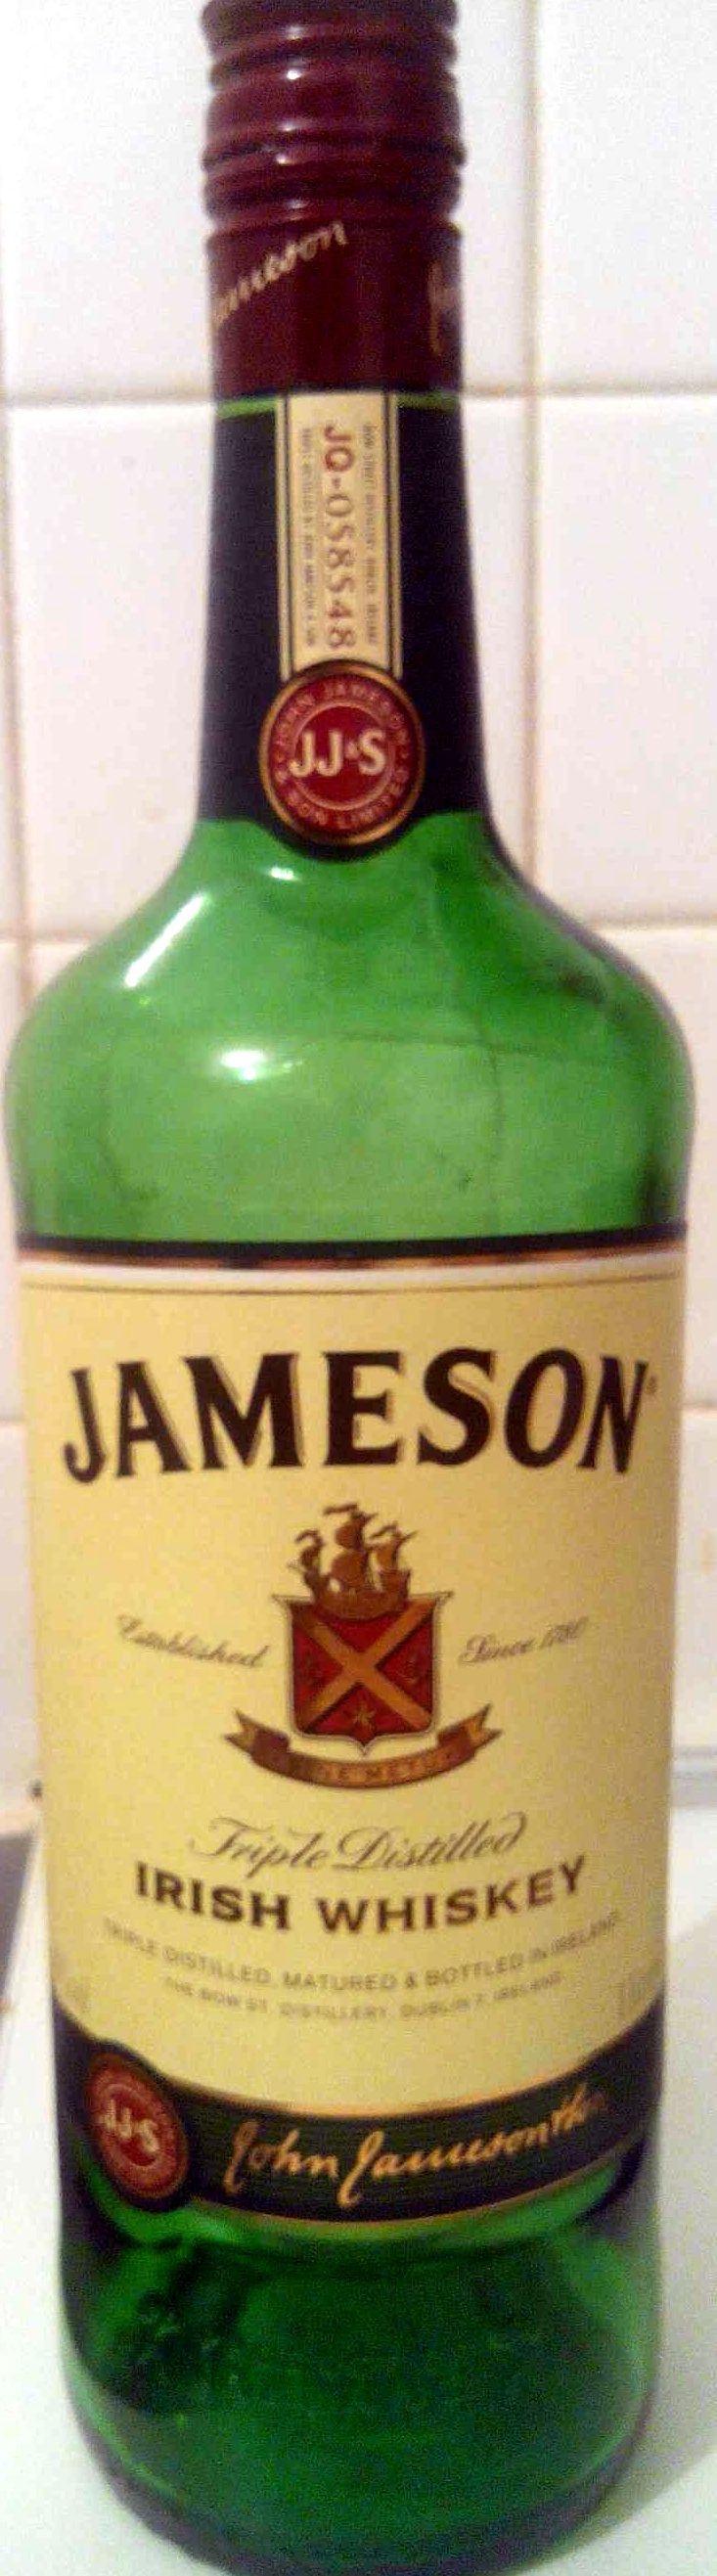 Jameson Whiskey - Product - ru